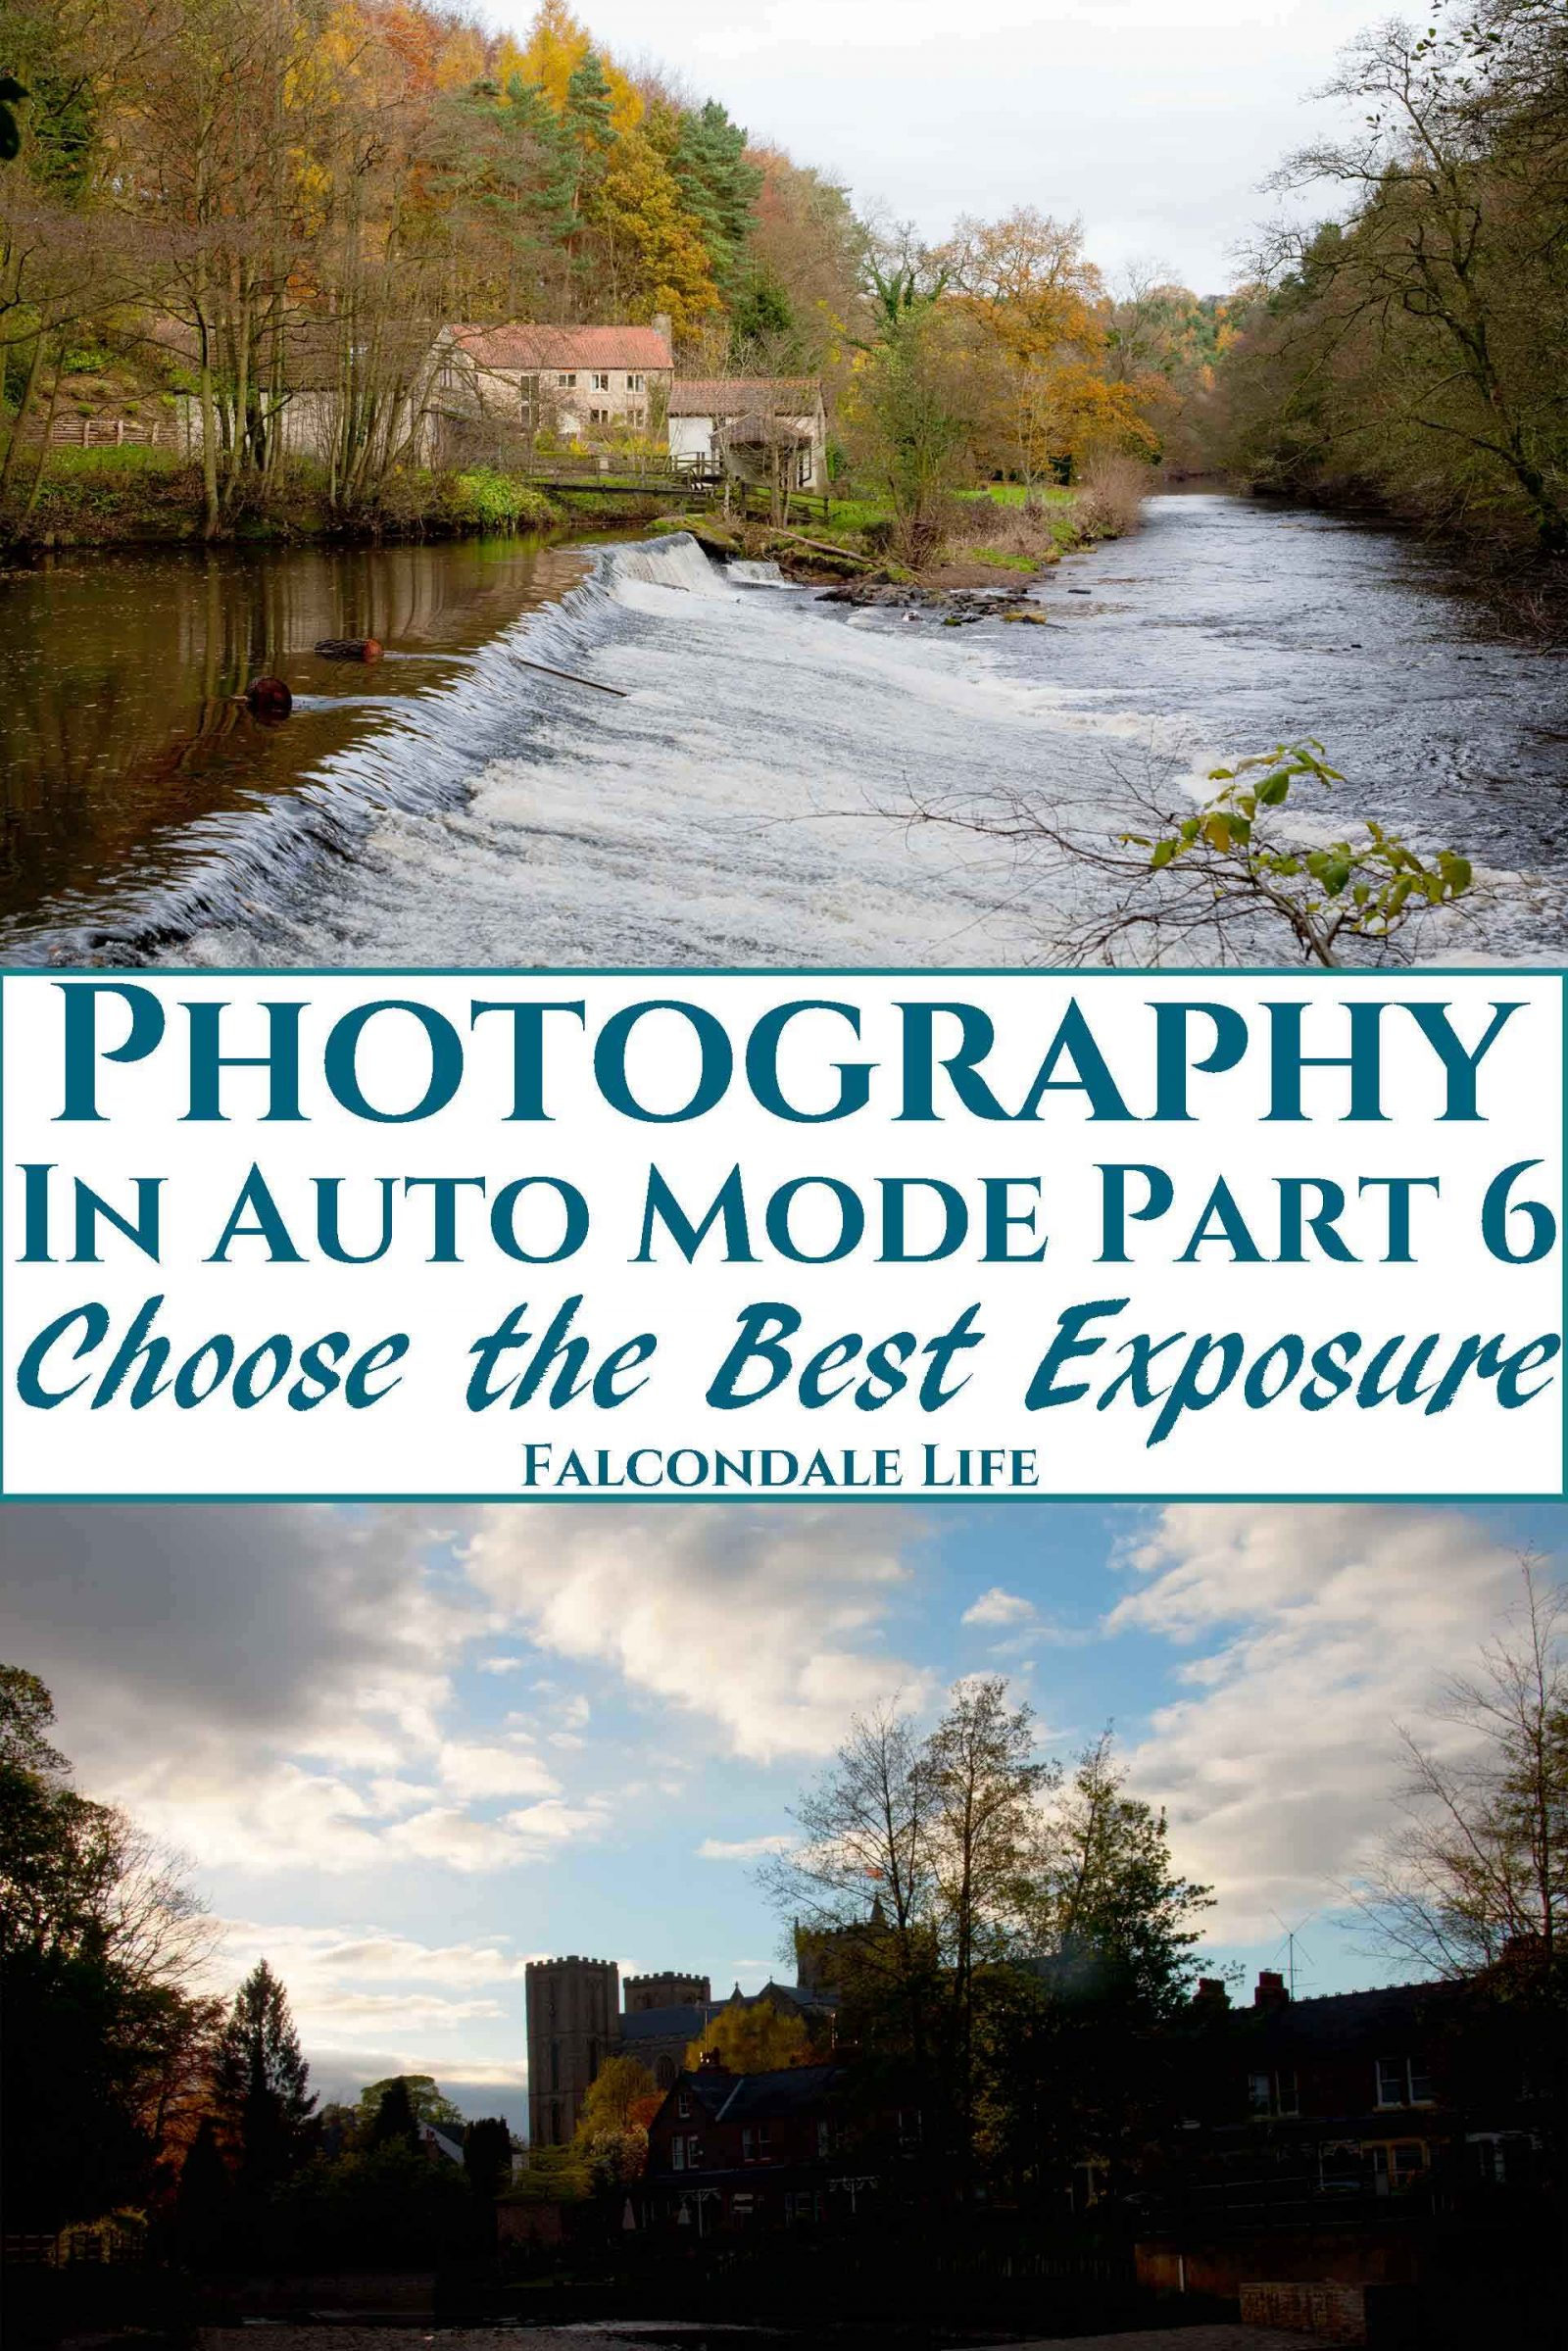 Getting the right exposure when your camera is in auto mode can be hit or miss. Get some control and pick the right area of your photo for the best exposure. Do you know what you need to expose for? Learn how to guarantee the best exposure. Tips for every kind of camera or phone. Photography in Auto Mode part 6: How to Choose the Best Exposure on Falcondale Life blog. Image description: River Nidd at Knaresborough and Ripon from the river, plus blog title.